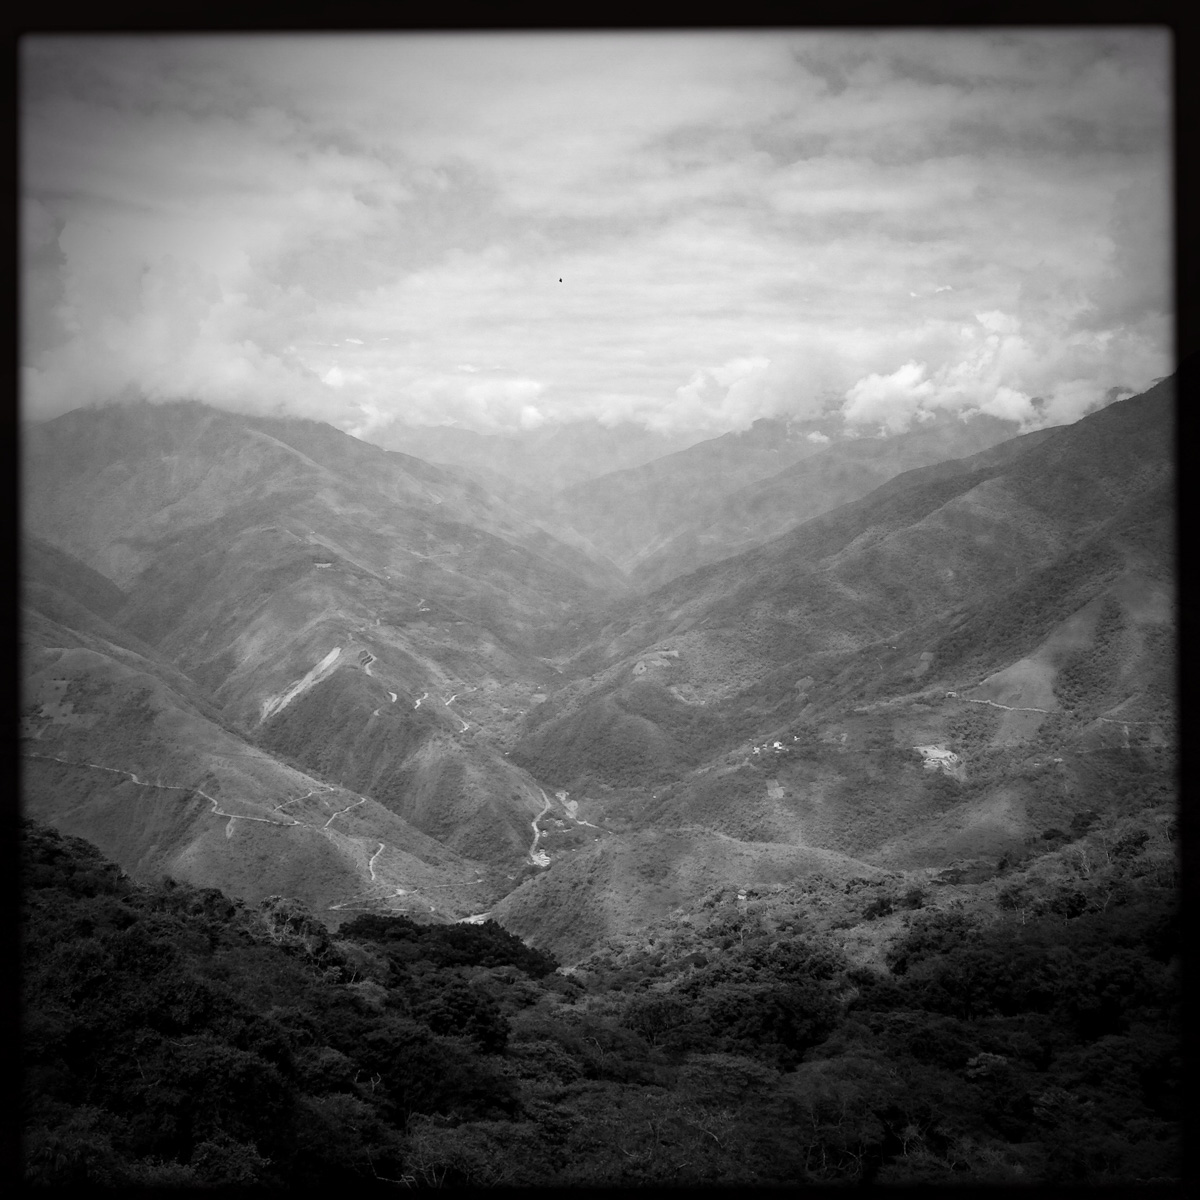 Looking down into Los Yungas